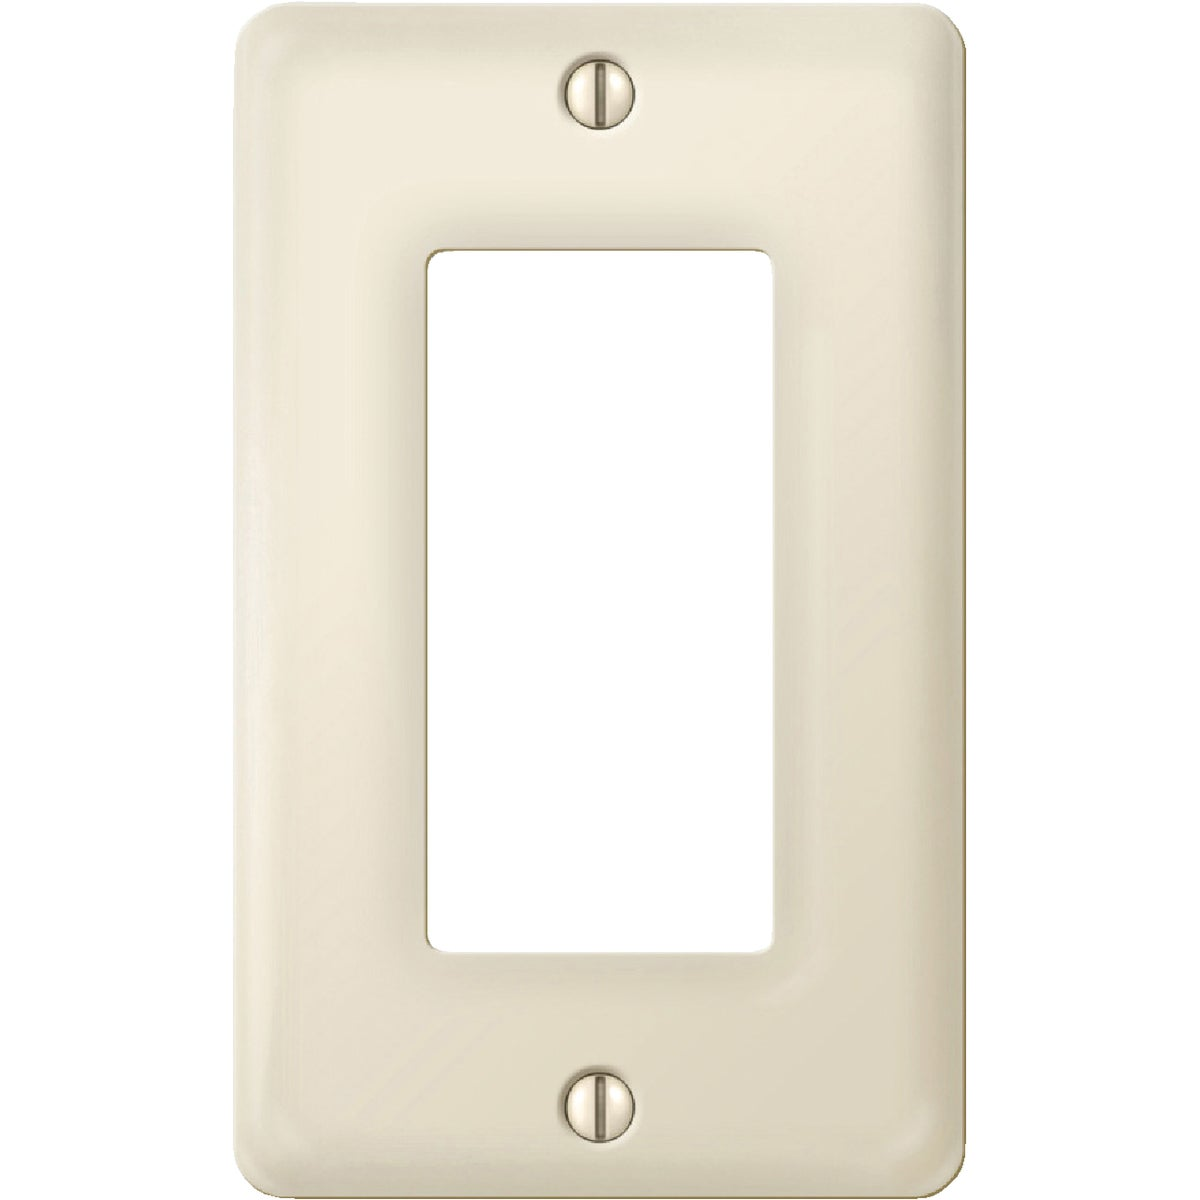 1RKR BN/PORC WALLPLATE - 987BN by Jackson Deerfield Mf